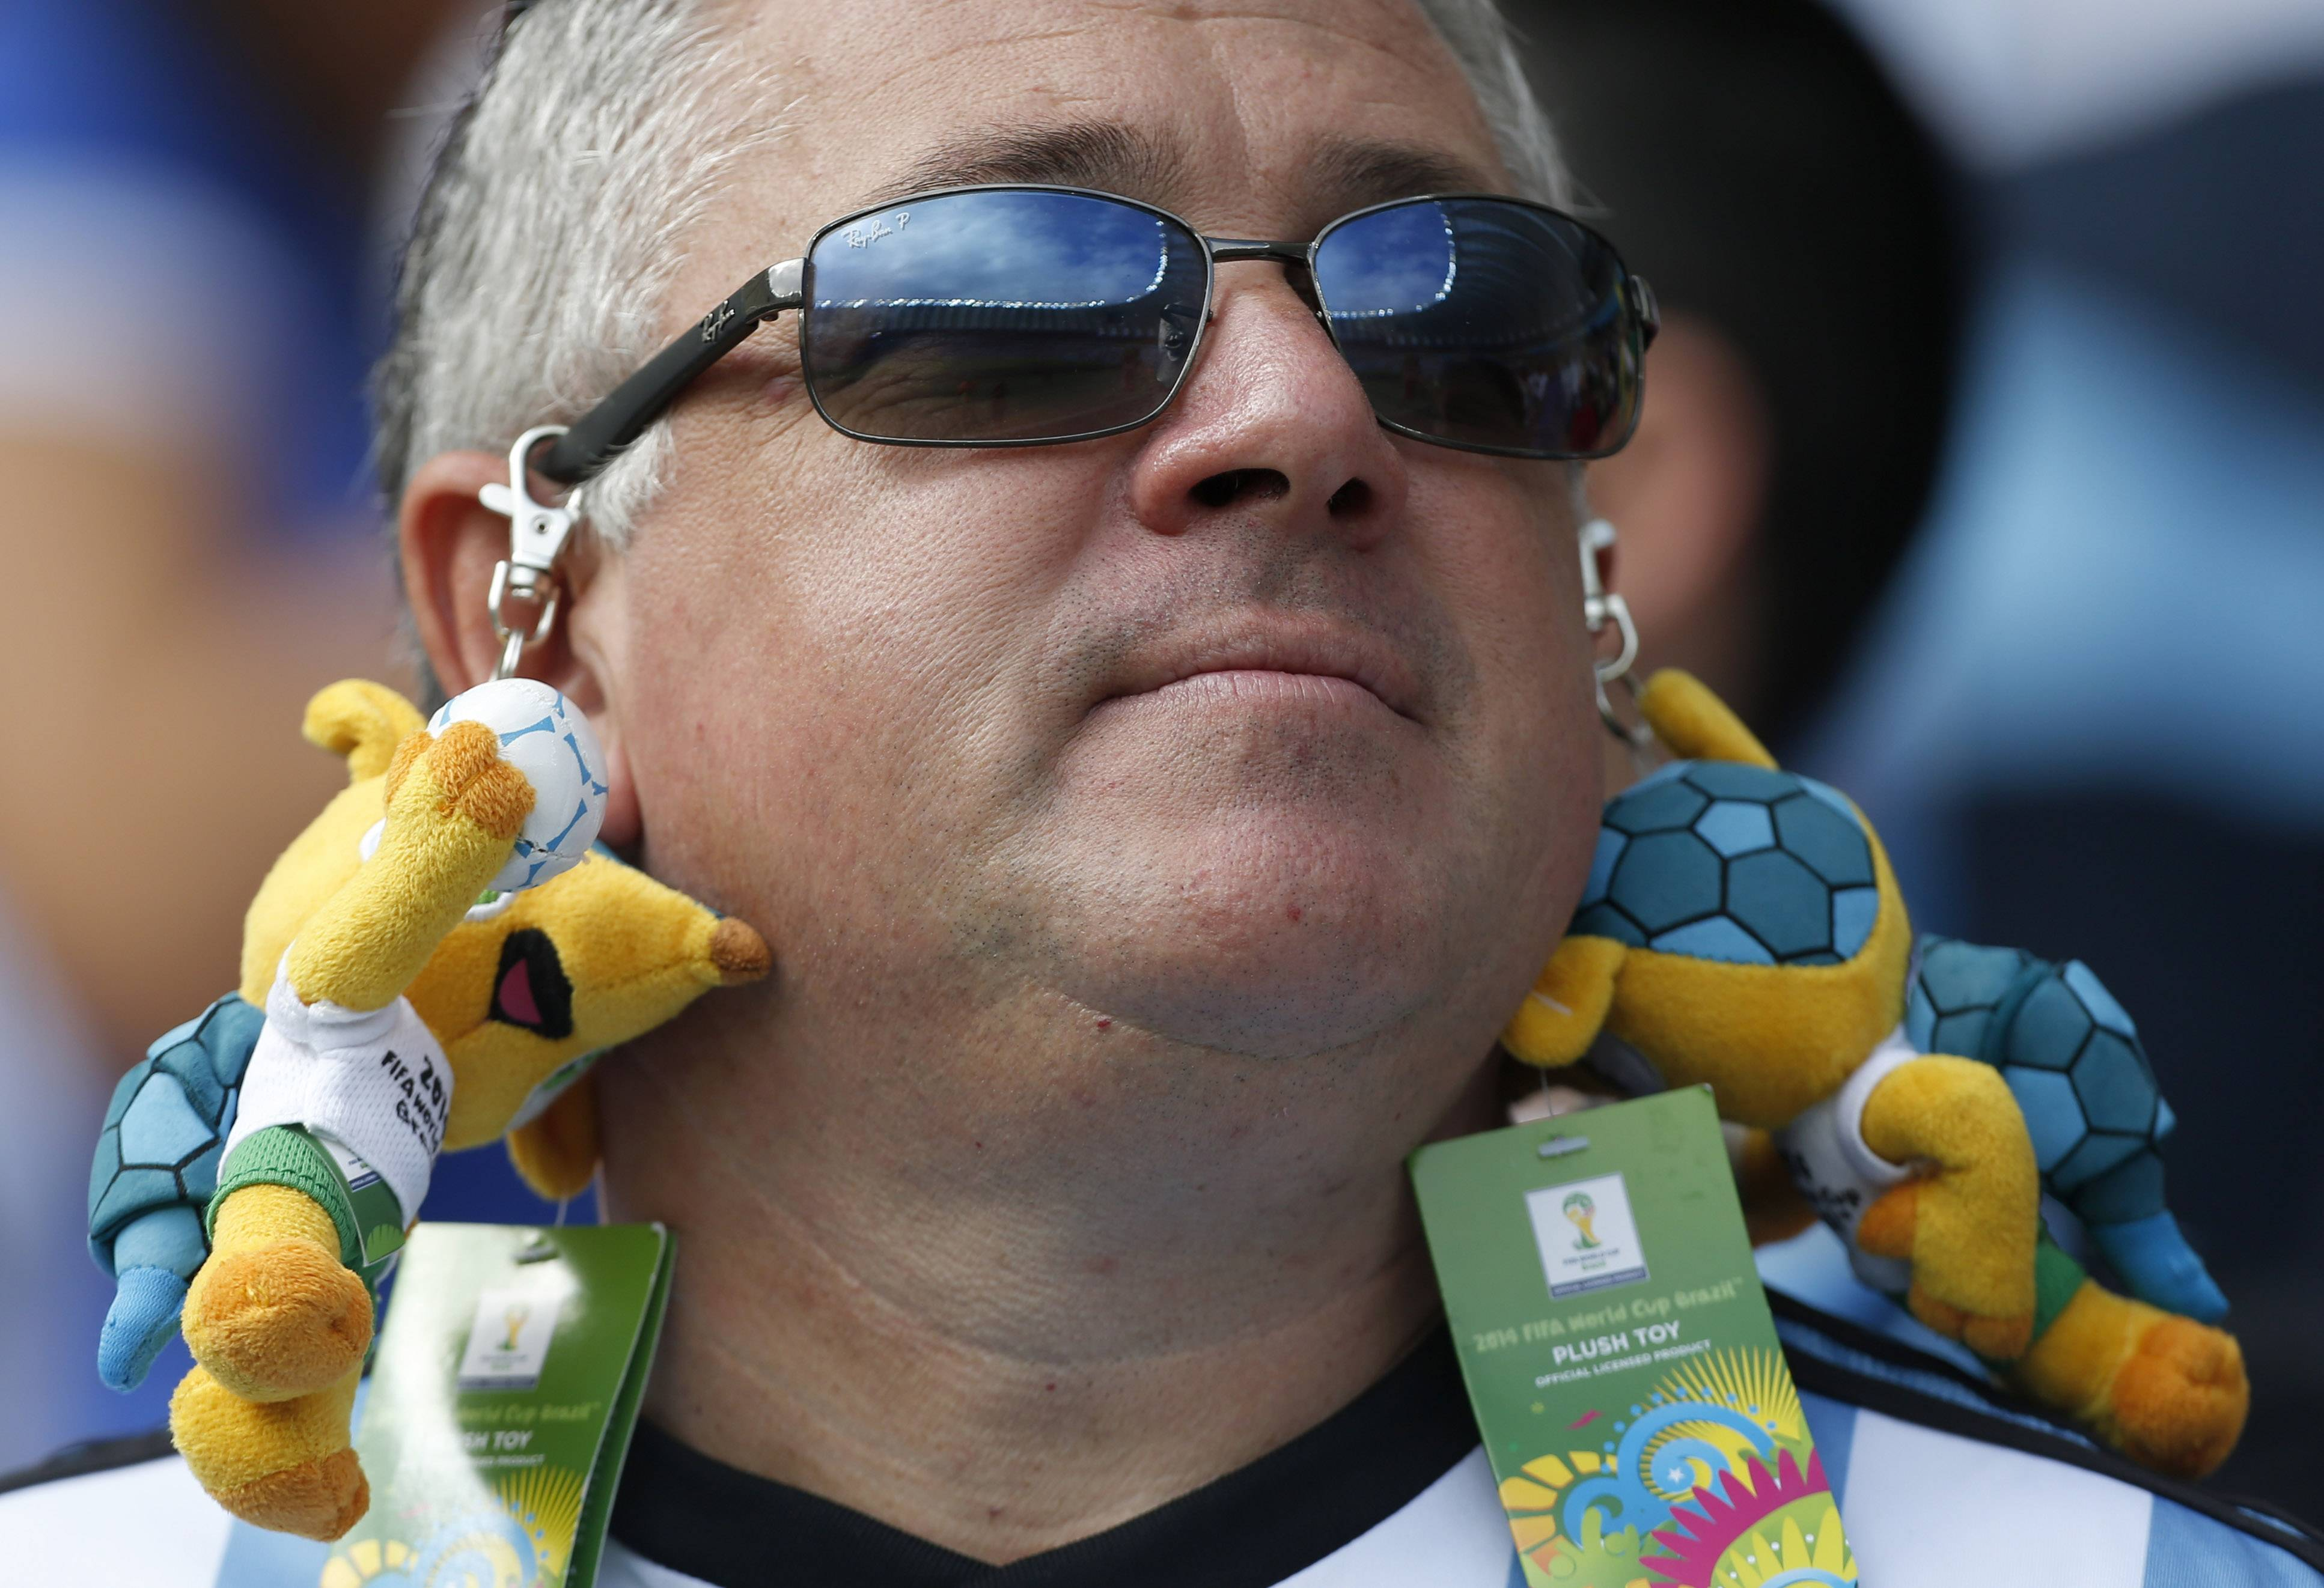 An Argentine supporter has stuffed-toy World Cup mascots attached to his sunglasses before the group F World Cup soccer match between Nigeria and Argentina at the Estadio Beira-Rio in Porto Alegre, Brazil, Wednesday, June 25, 2014.